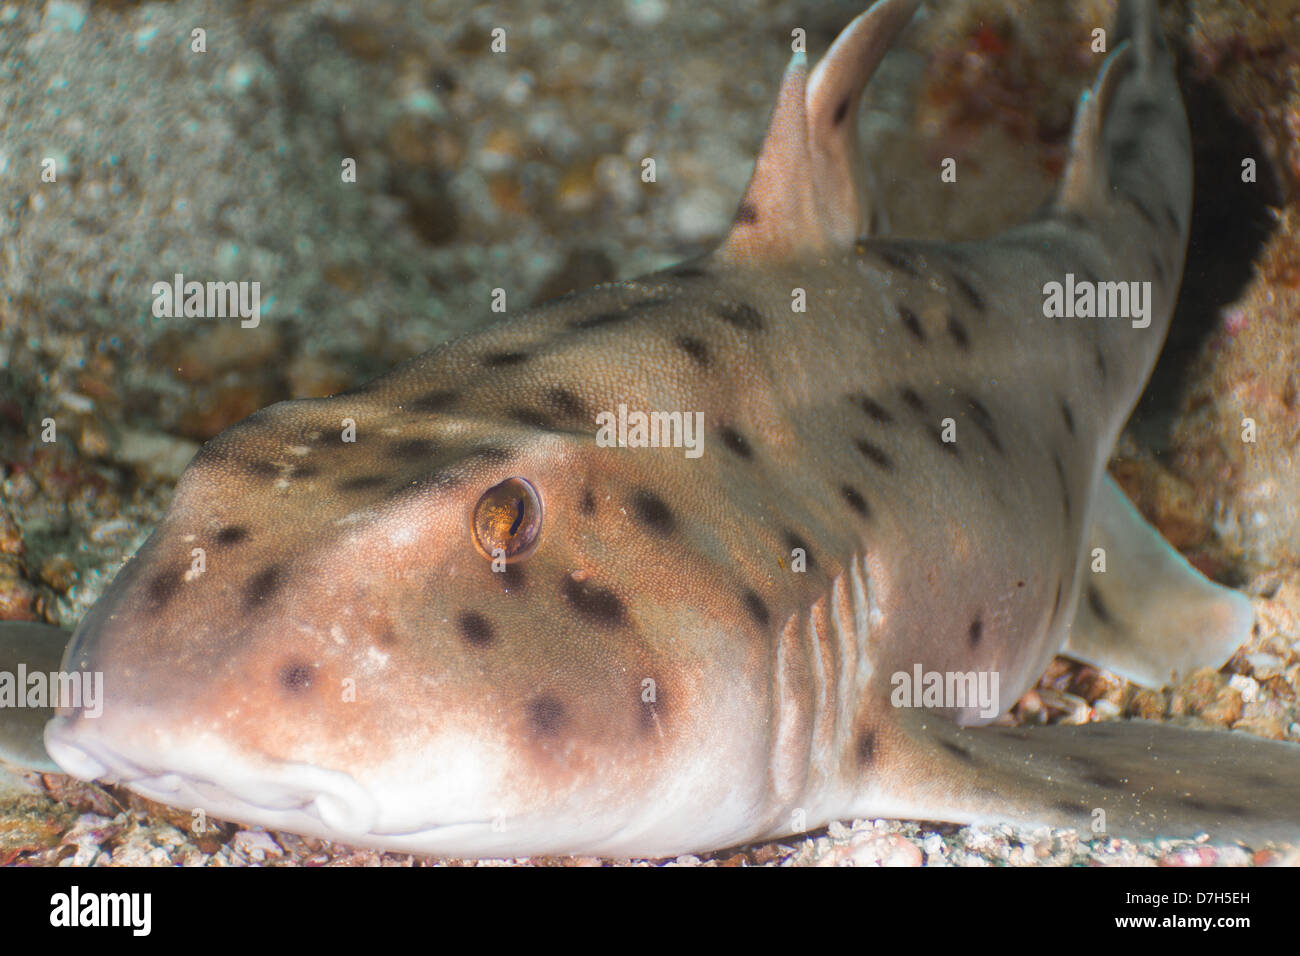 Horn shark off of La Paz, Mexico - Stock Image